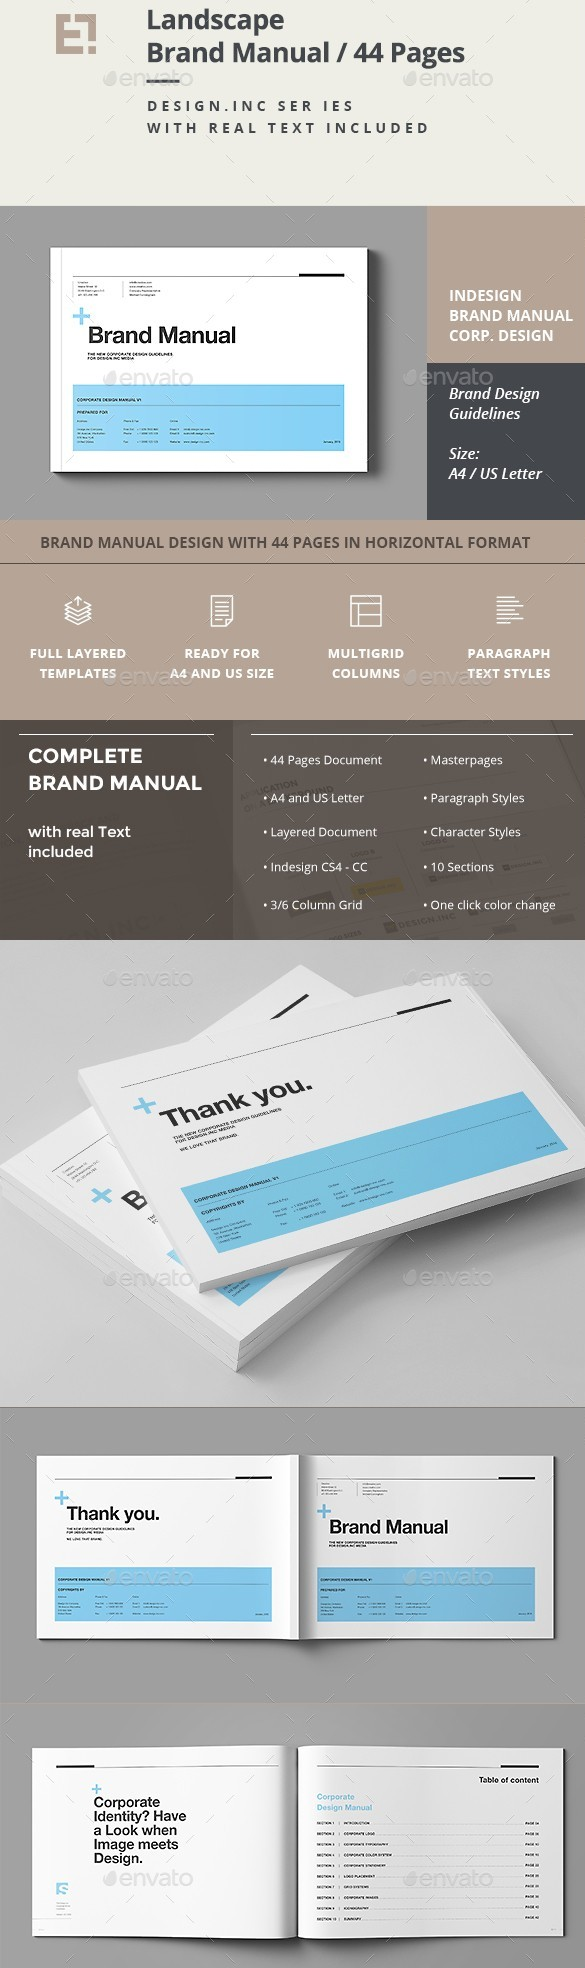 23 Best Brand Guidelines Templates PSD InDesign Download